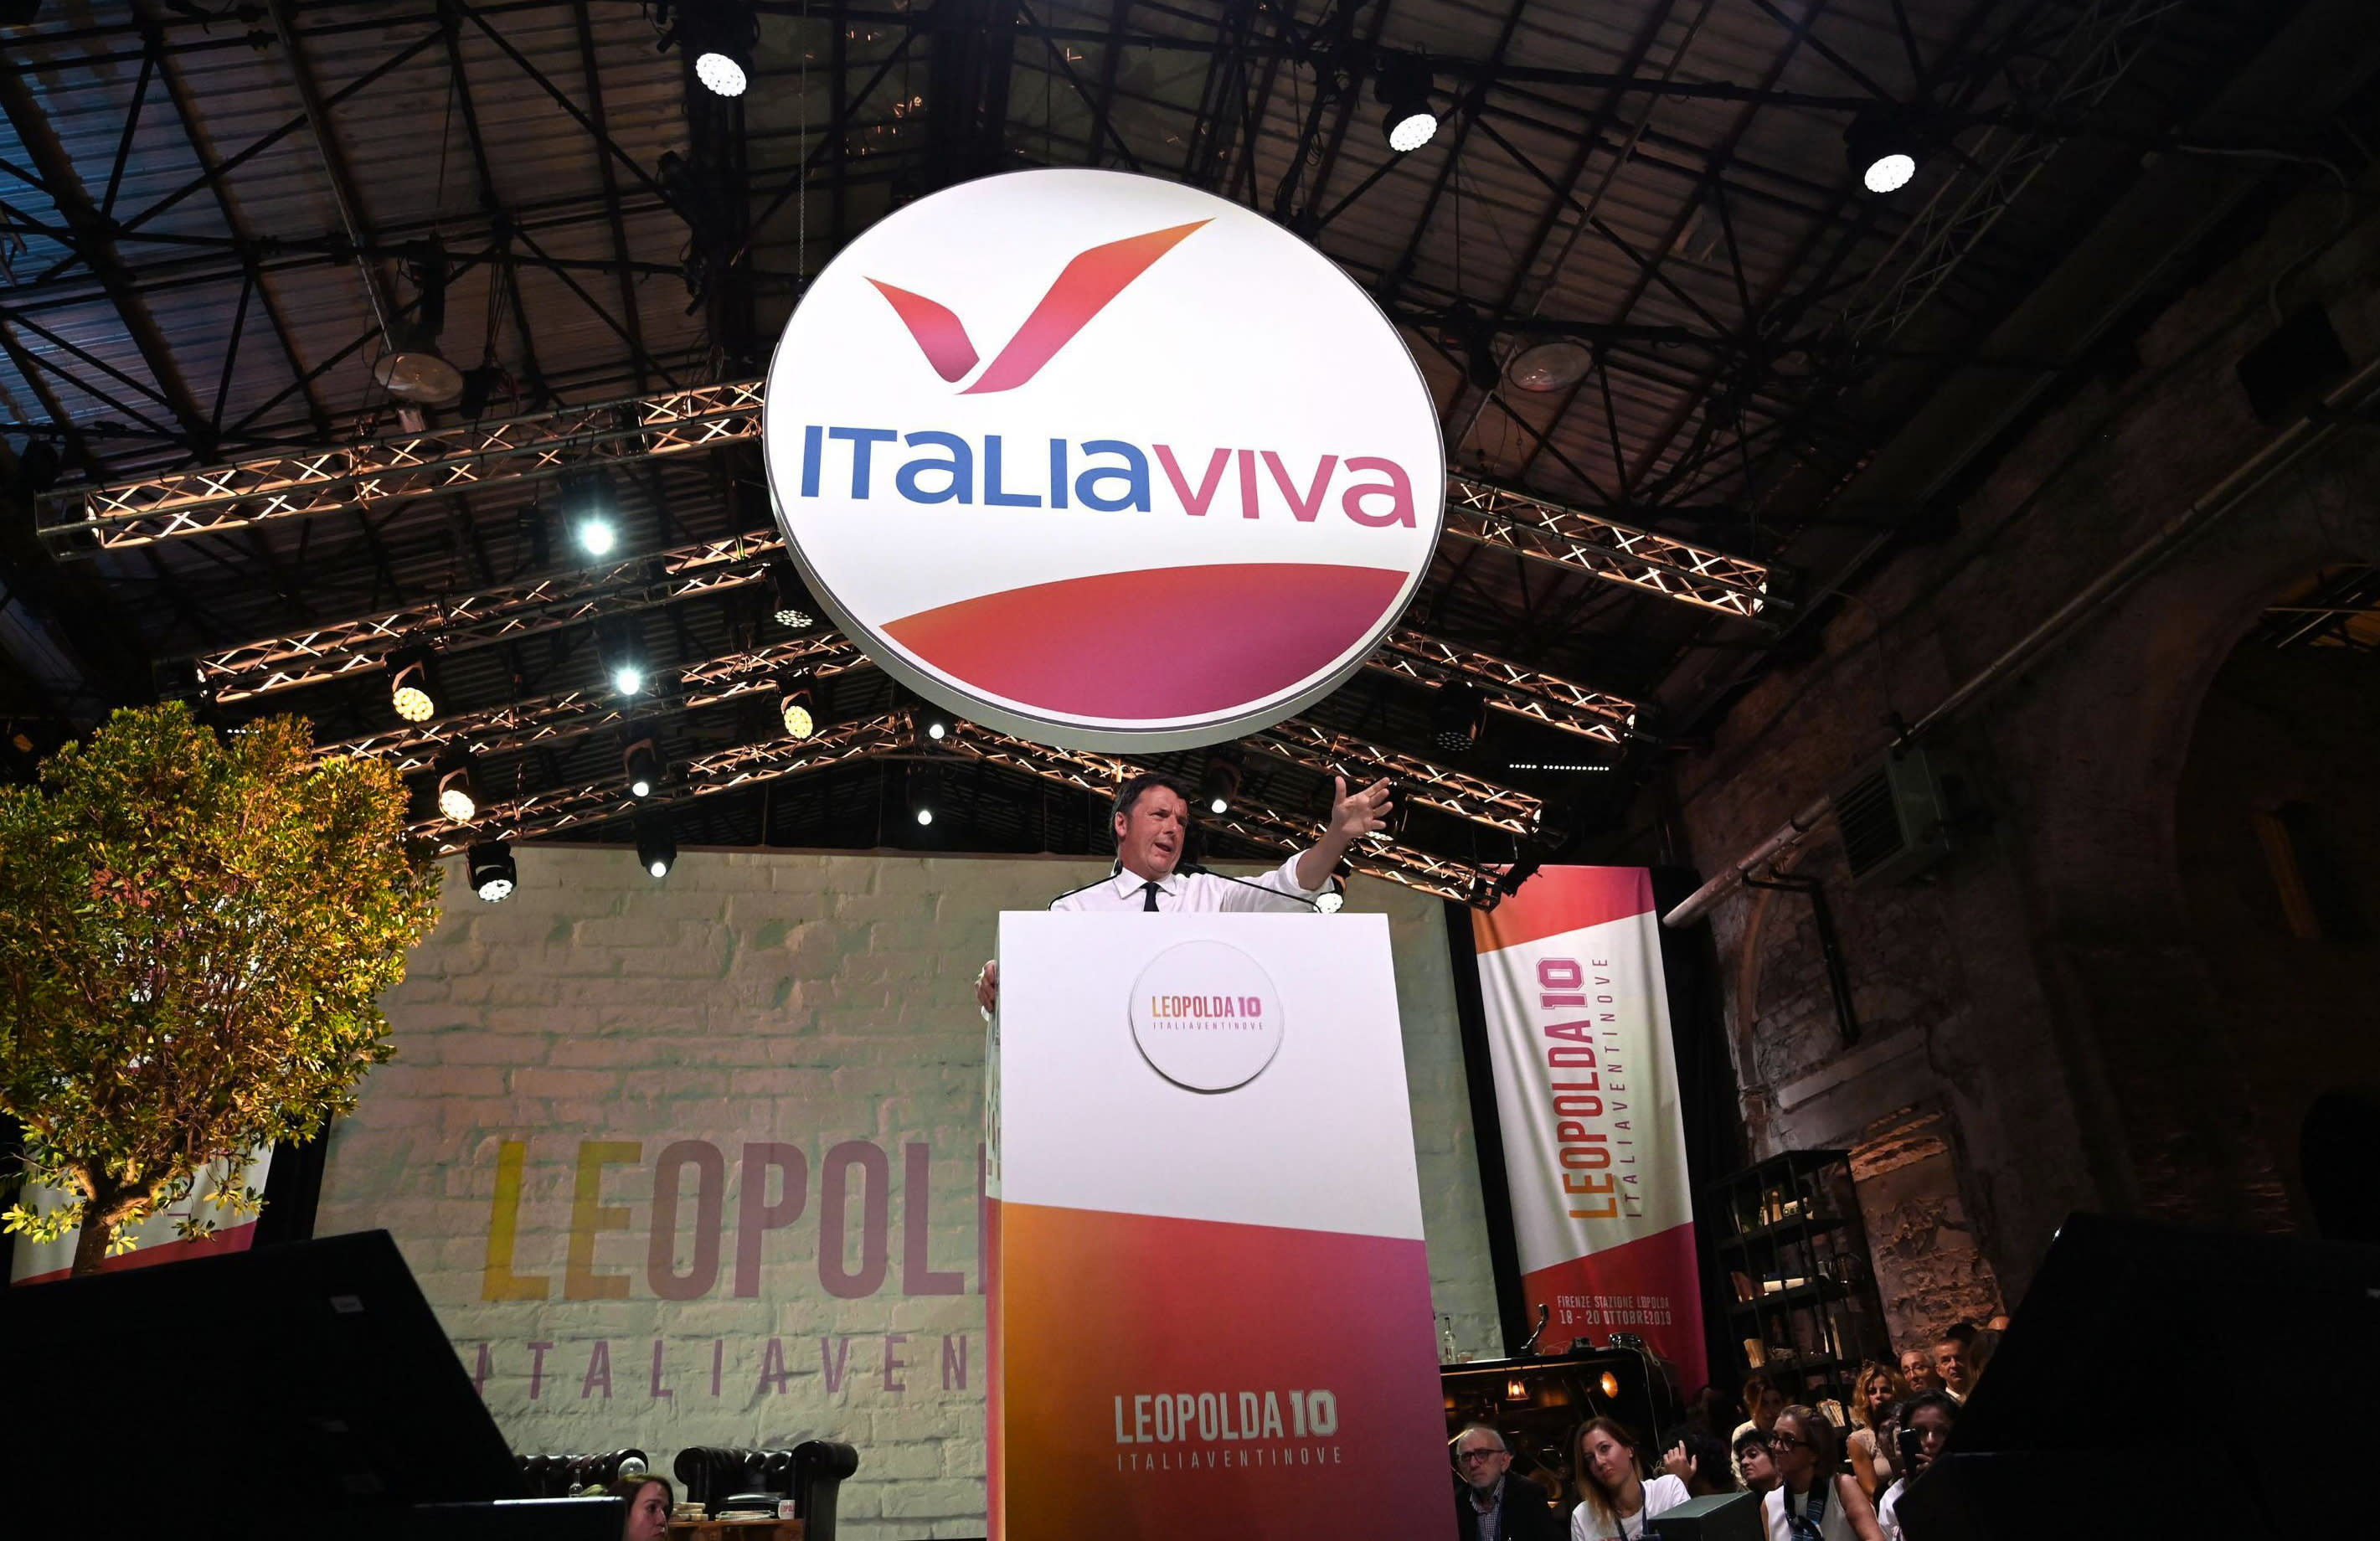 Former Italian Premier and founder of the Italia Viva (Italy alive) party Matteo Renzi speaks at a meeting in Florence, Italy, Sunday, Oct. 20, 2019. (Claudio Giovannini/ANSA via AP)